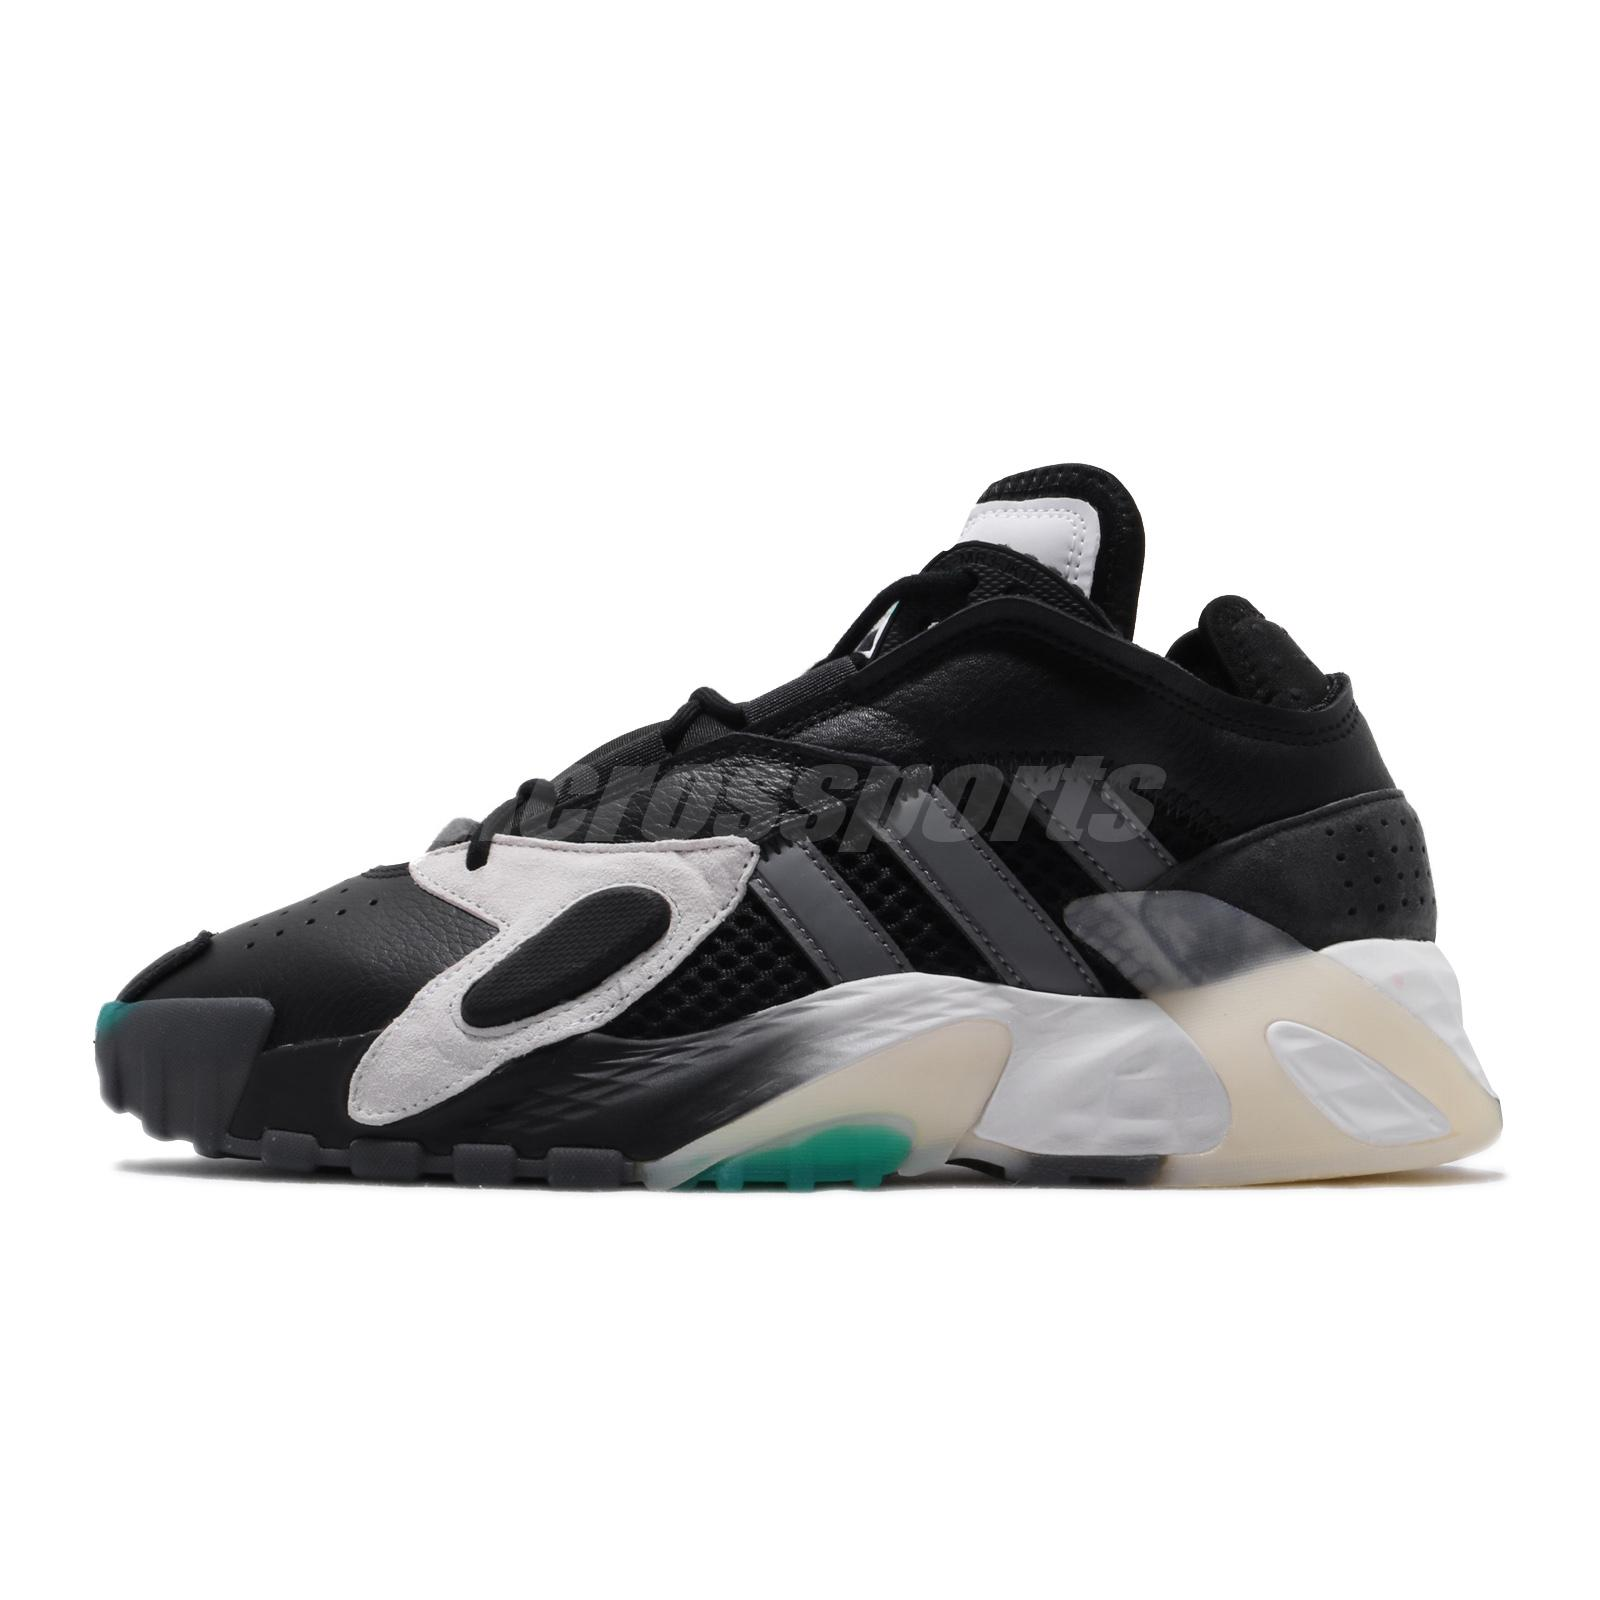 EE4968 New Adidas Men/'s Originals Streetball Shoes Sneakers Black//White